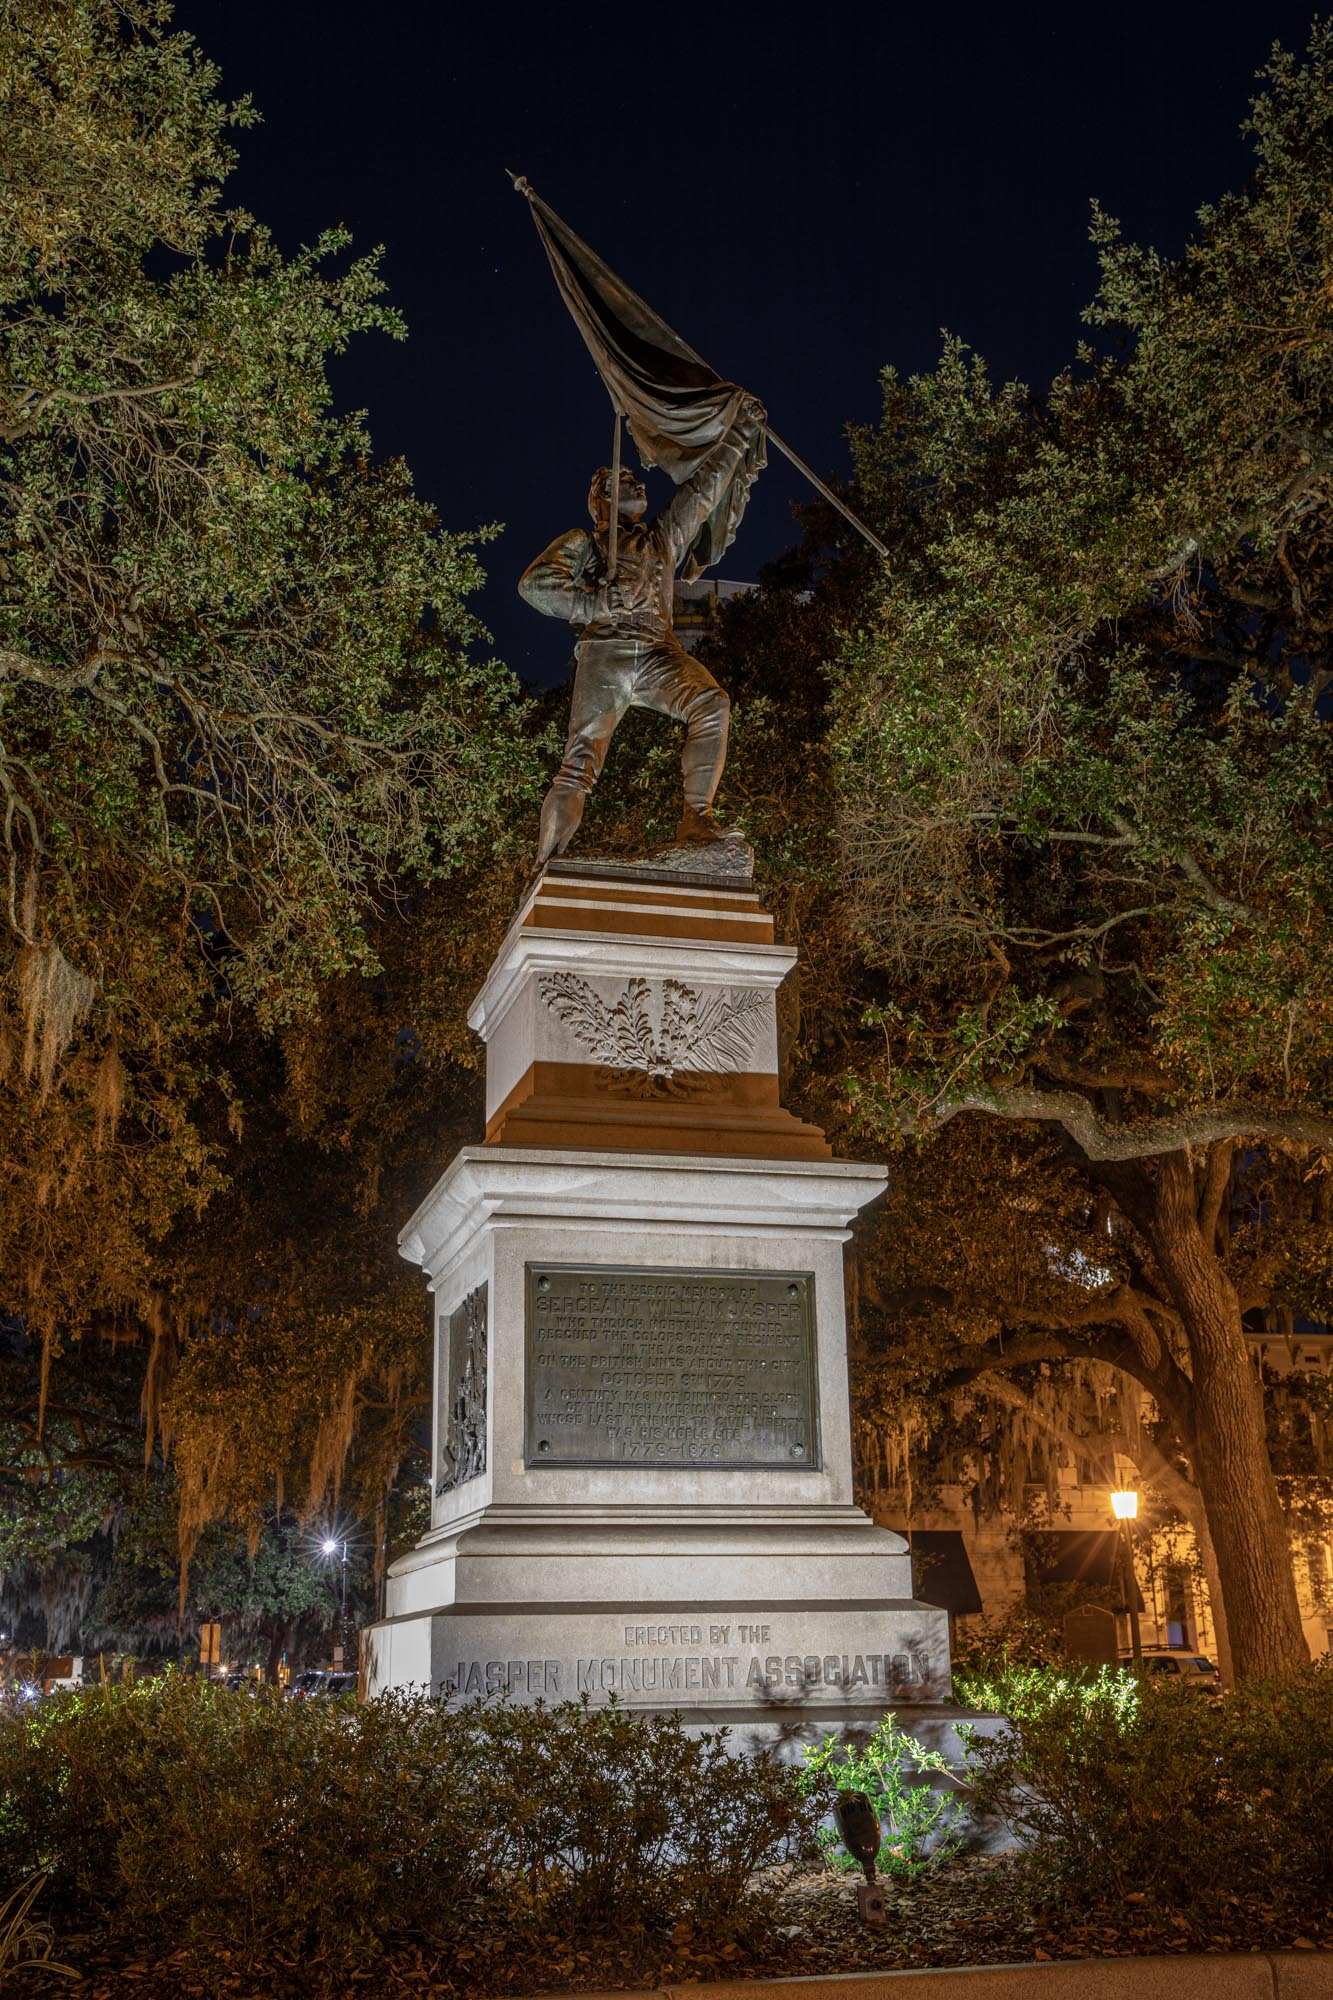 The Sergeant William Jasper monument, memorializing his death at the Siege of Savannah in October 1779 while attempting to rescue his Regiments colors.  Designed by Alexander Doyle